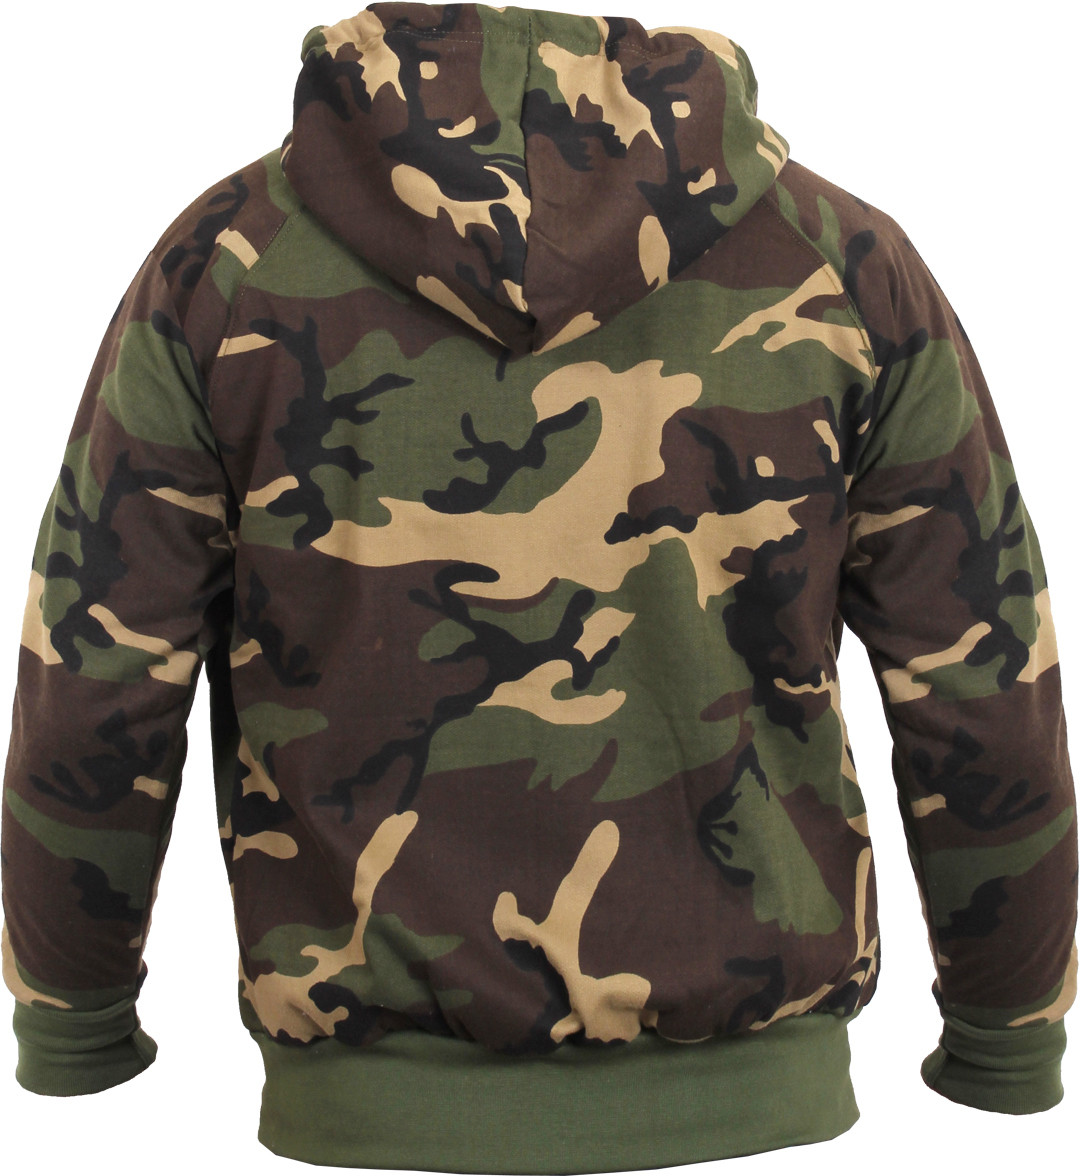 Woodland Camouflage Thermal Lined Zip Up Hoodie Sweatshirt 036507150d5